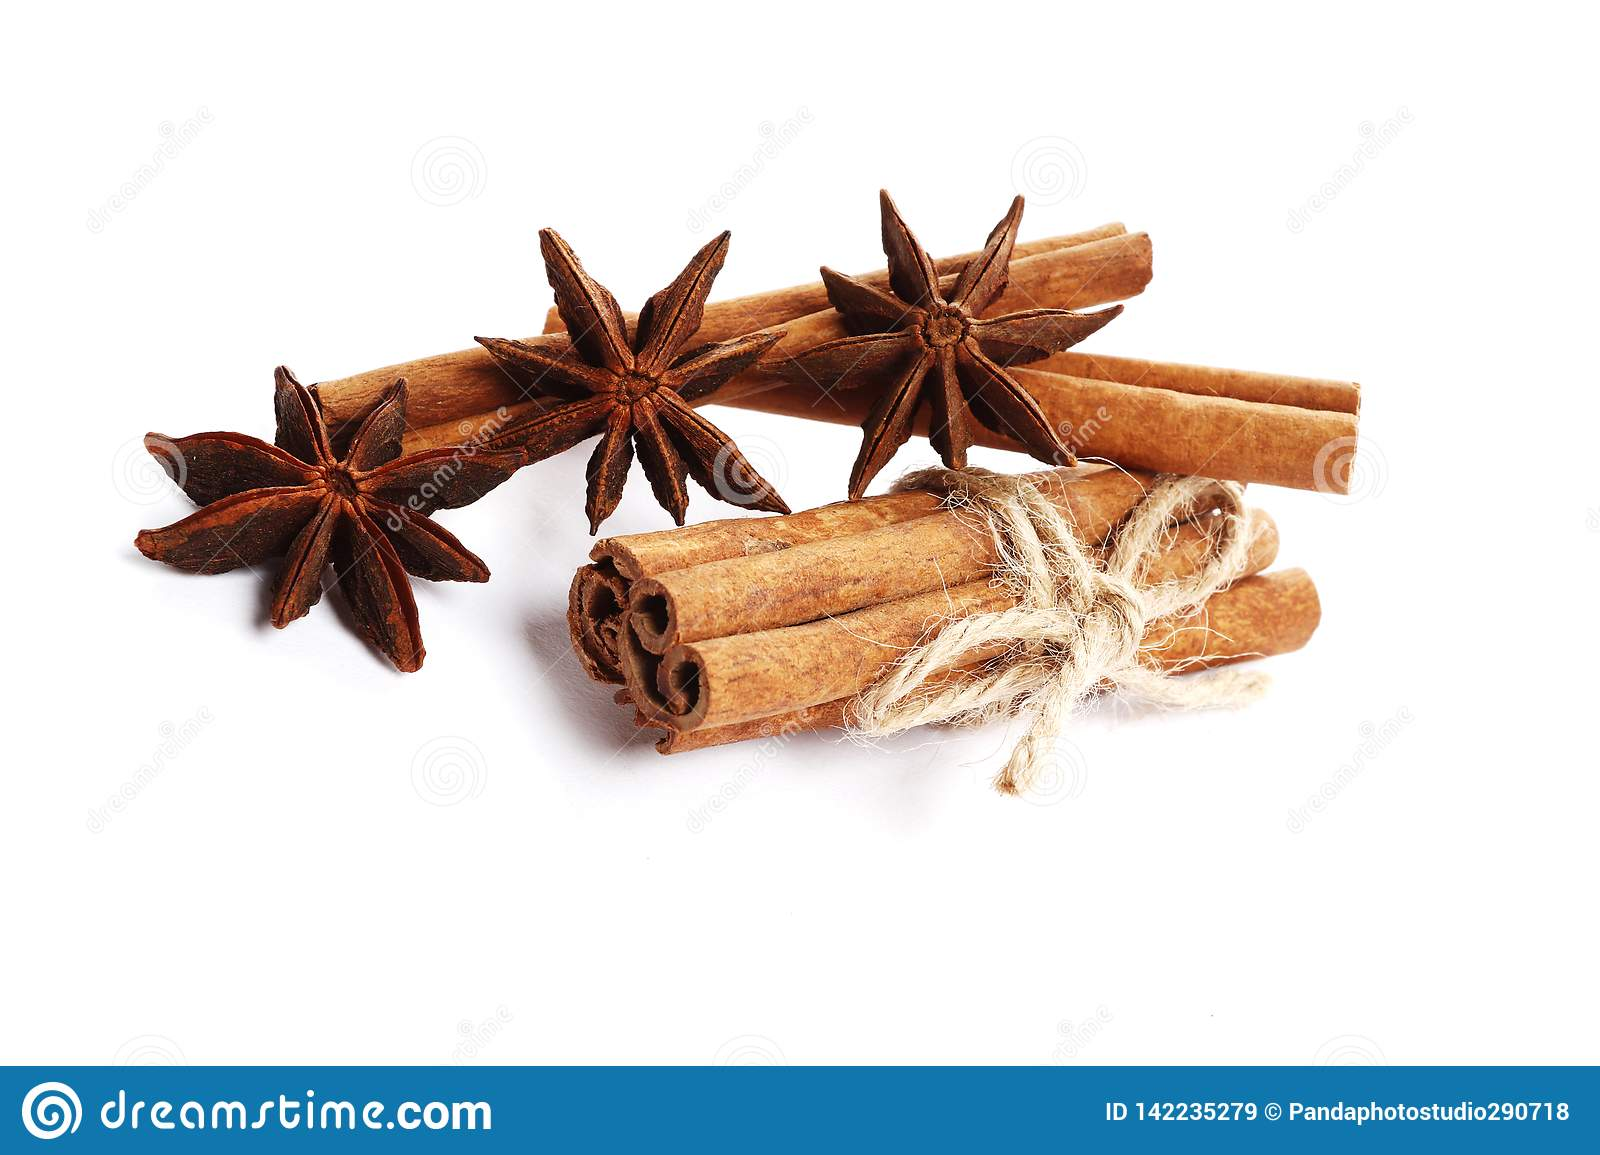 Cinnamon sticks and anise isolated on white background